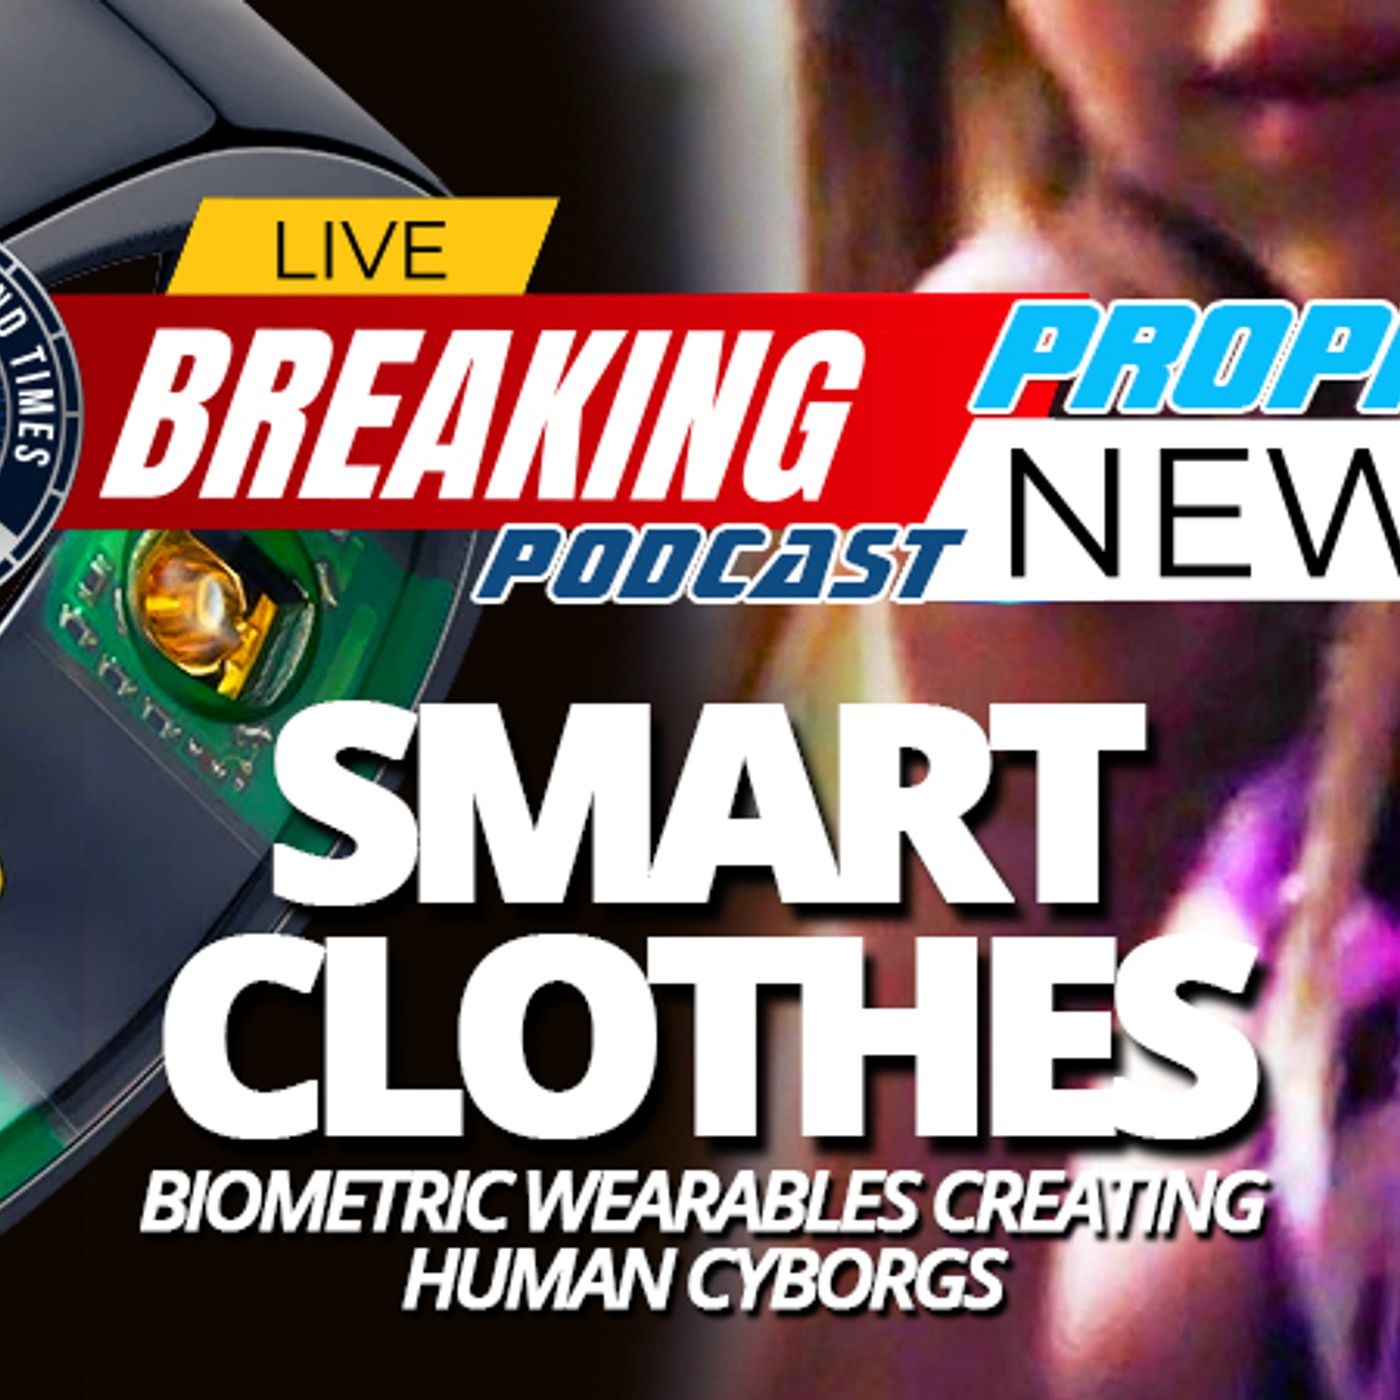 NTEB PROPHECY NEWS PODCAST: Biometric Wearables And 'Smart Clothing' Is An Exploding Market As The Push To Create Human Cyborgs Skyrockets